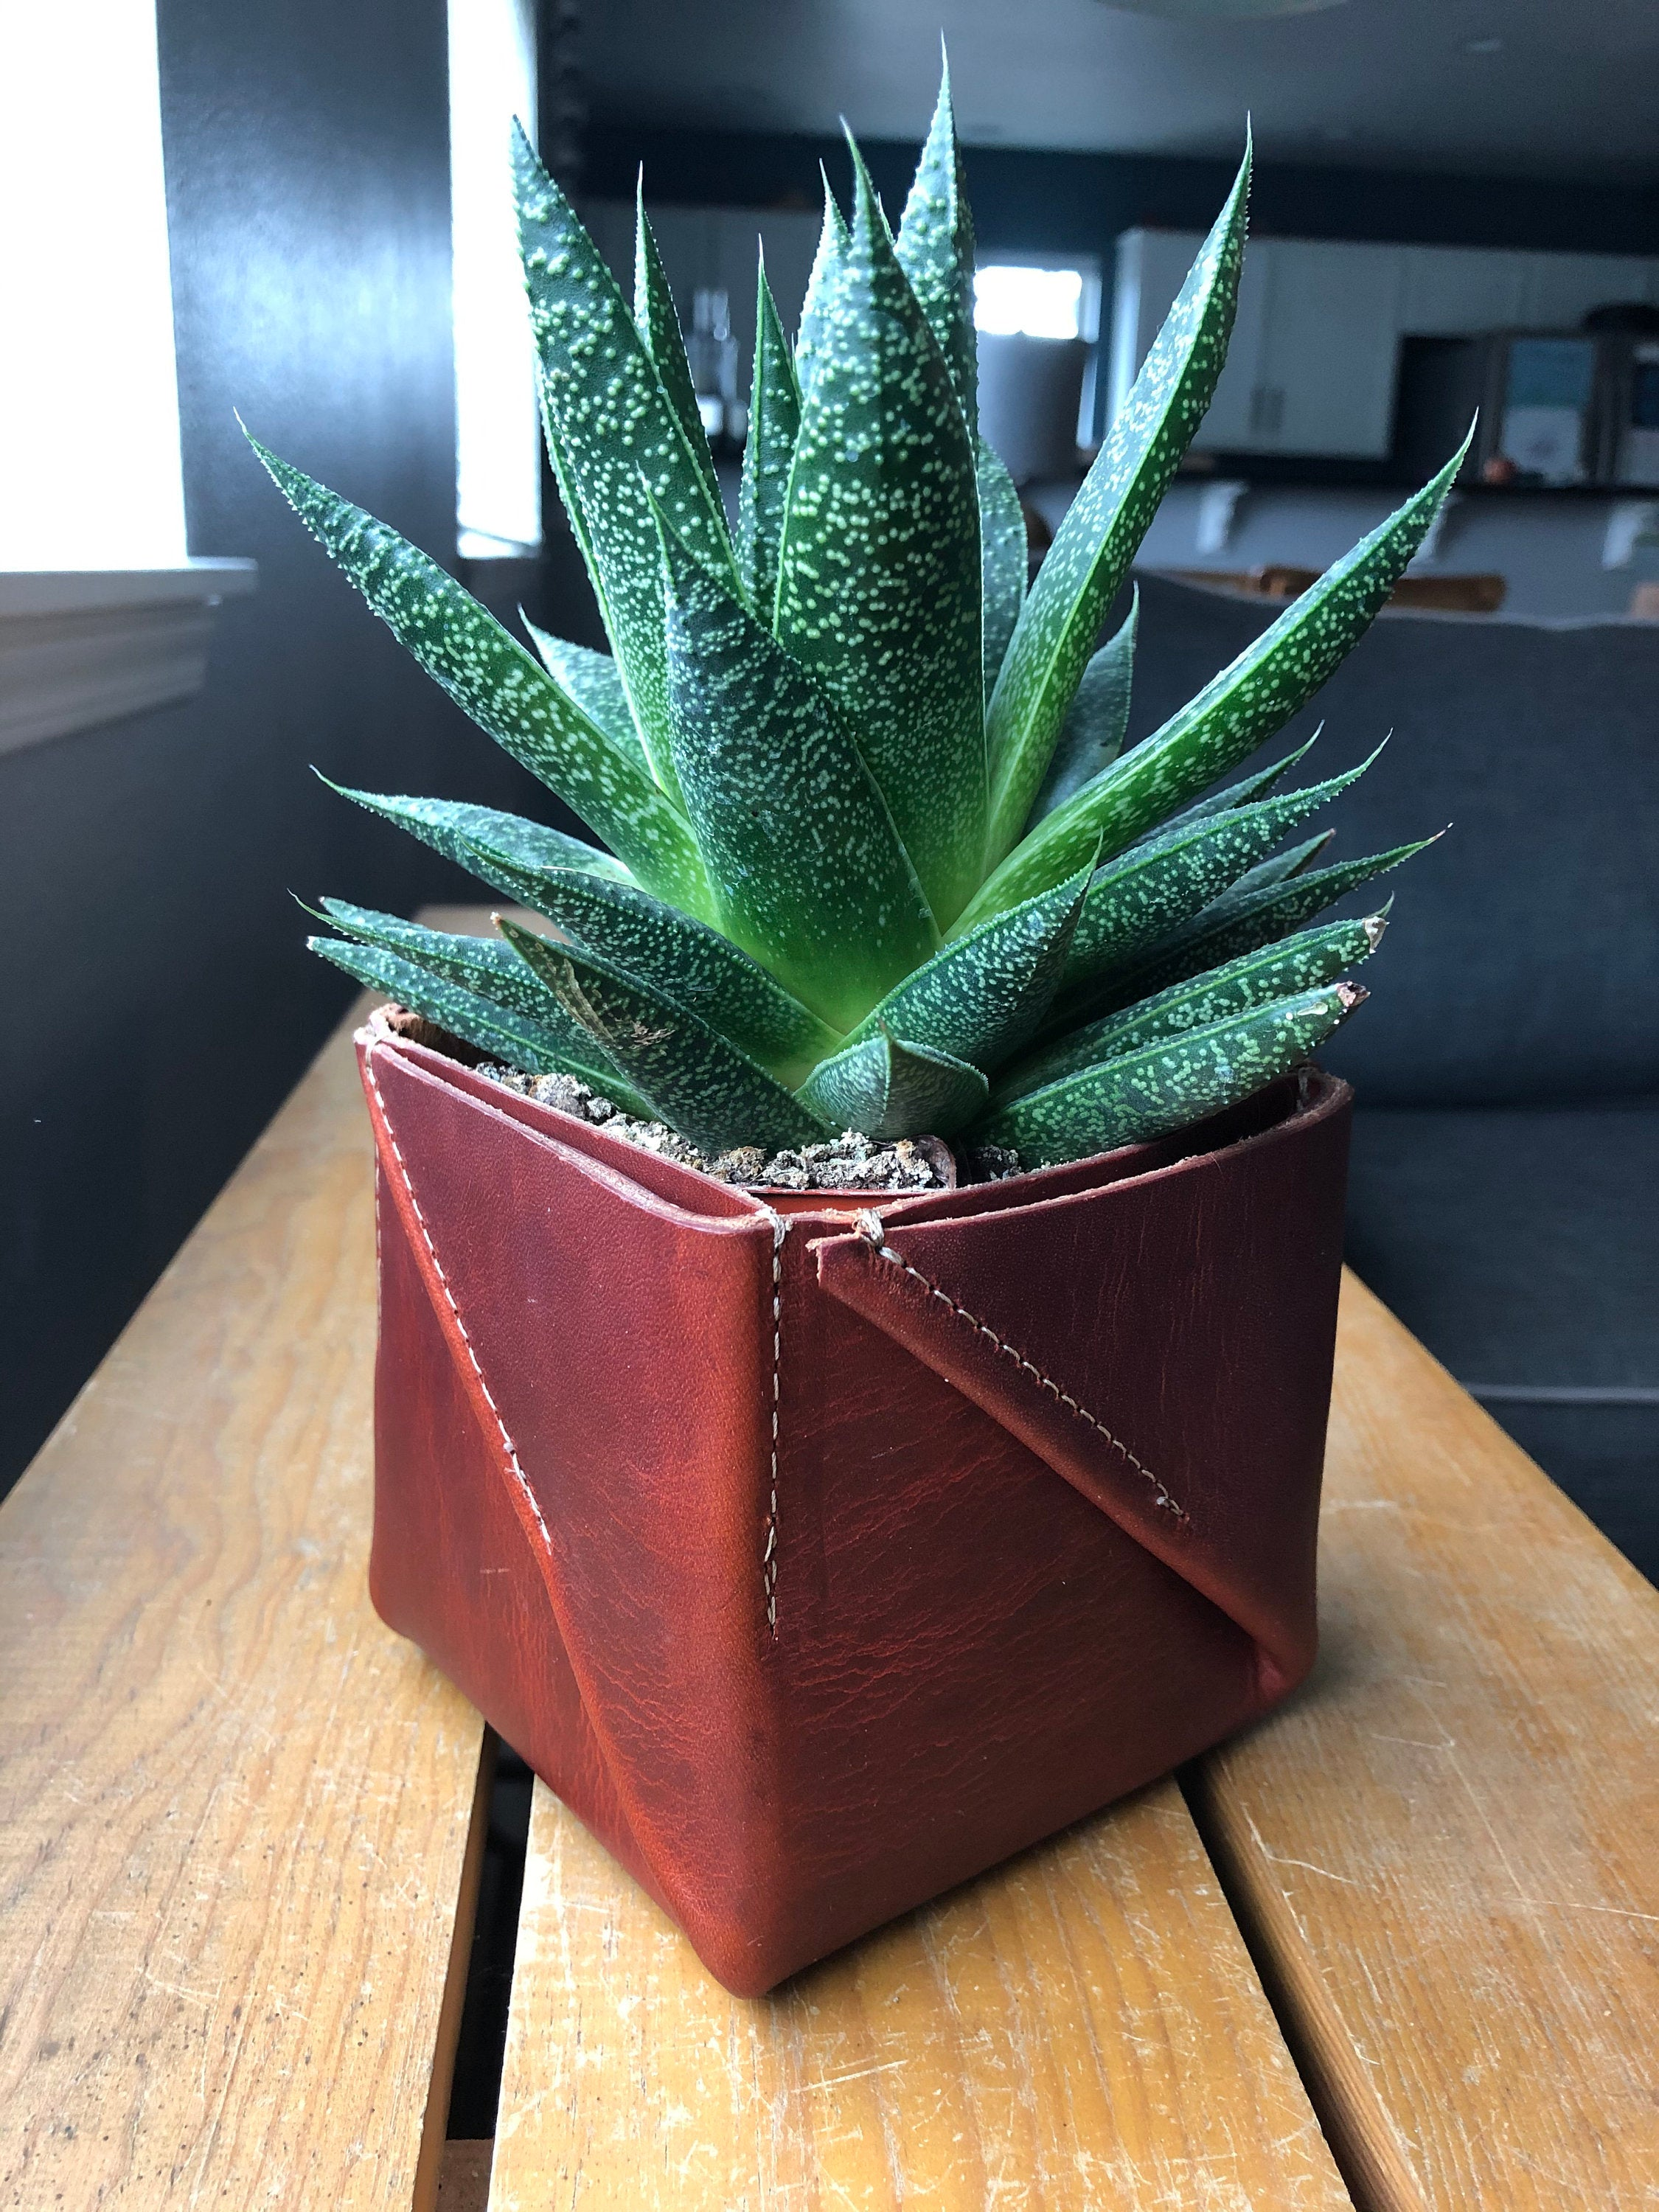 Brown, folded leather planter holds spiky green succulent on table by window